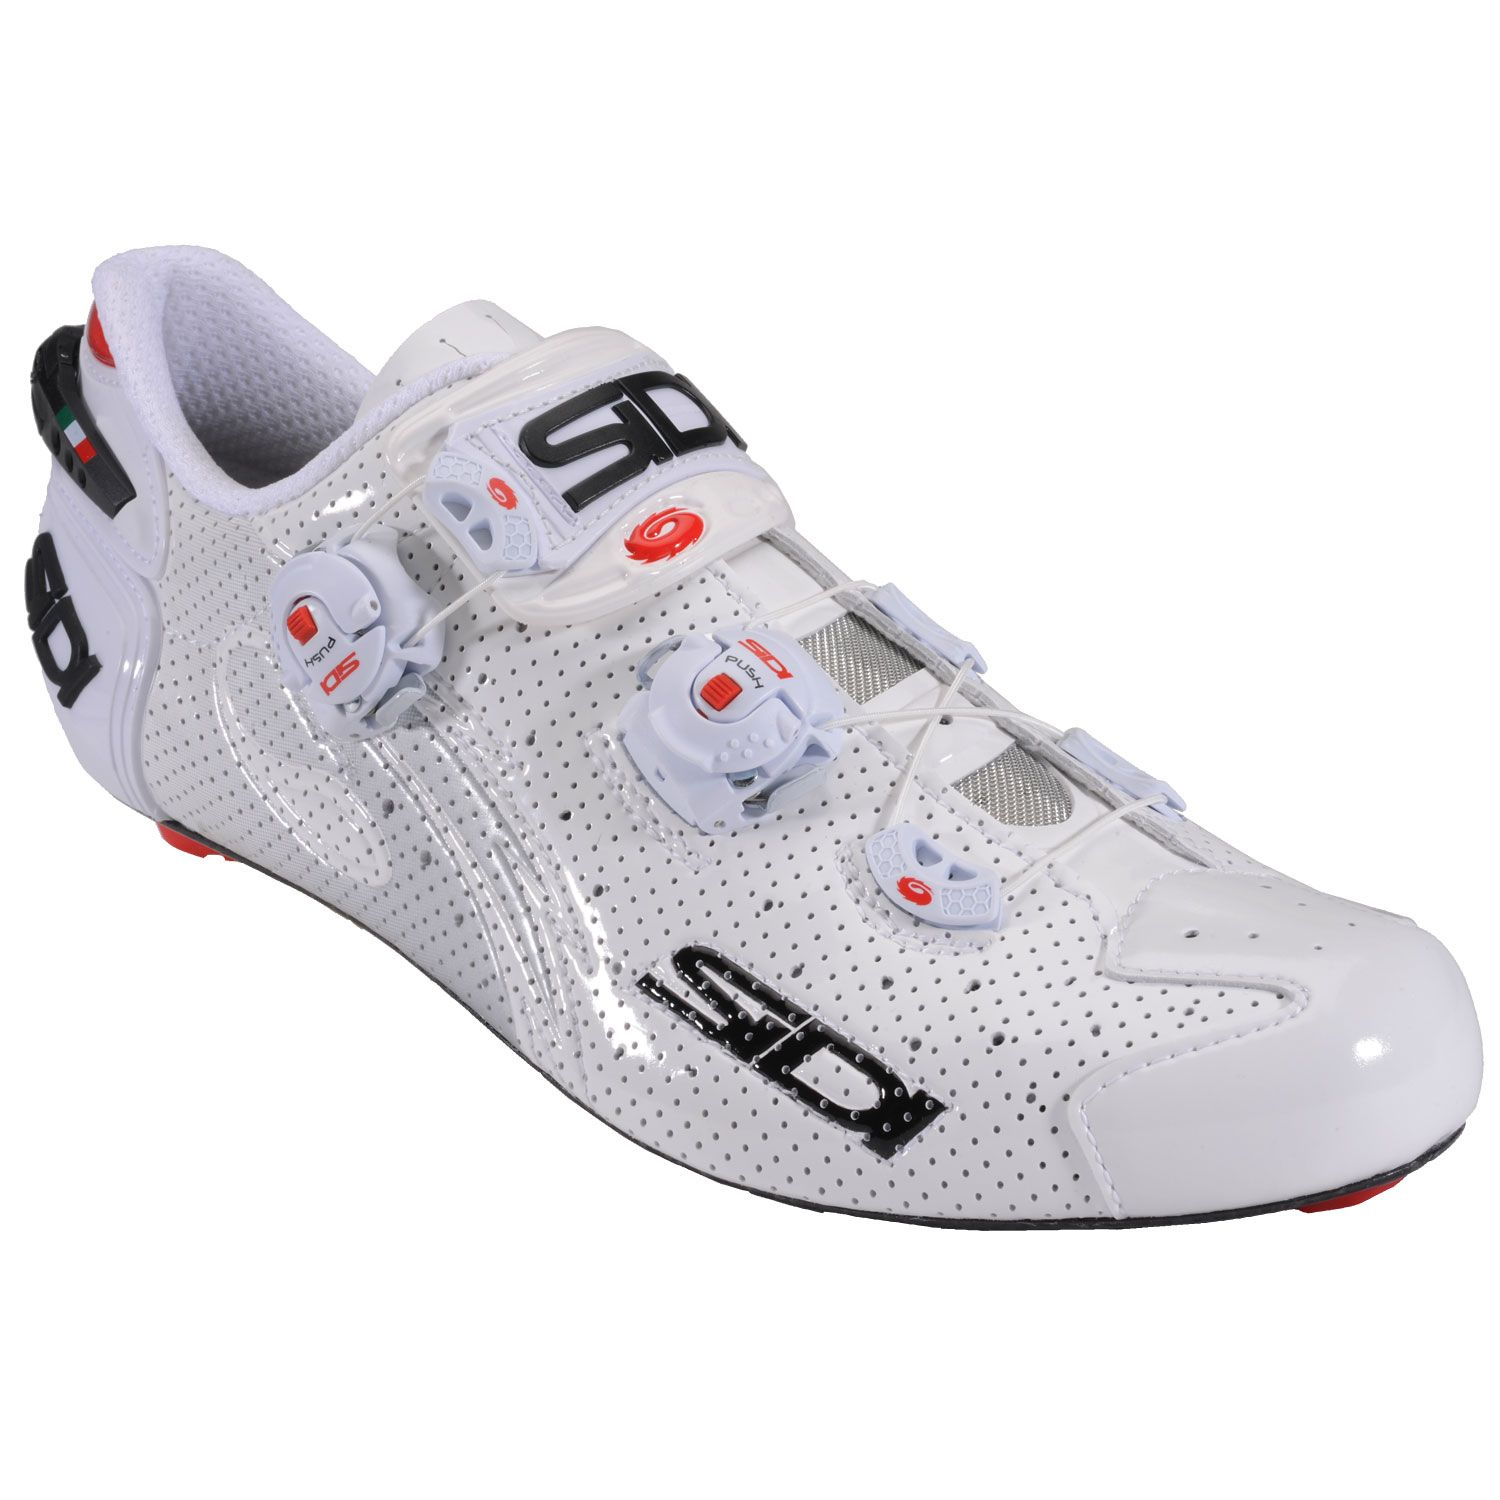 Sidi Wire Carbon Air Vernice Road Shoes | New Bike Gear We Love ...